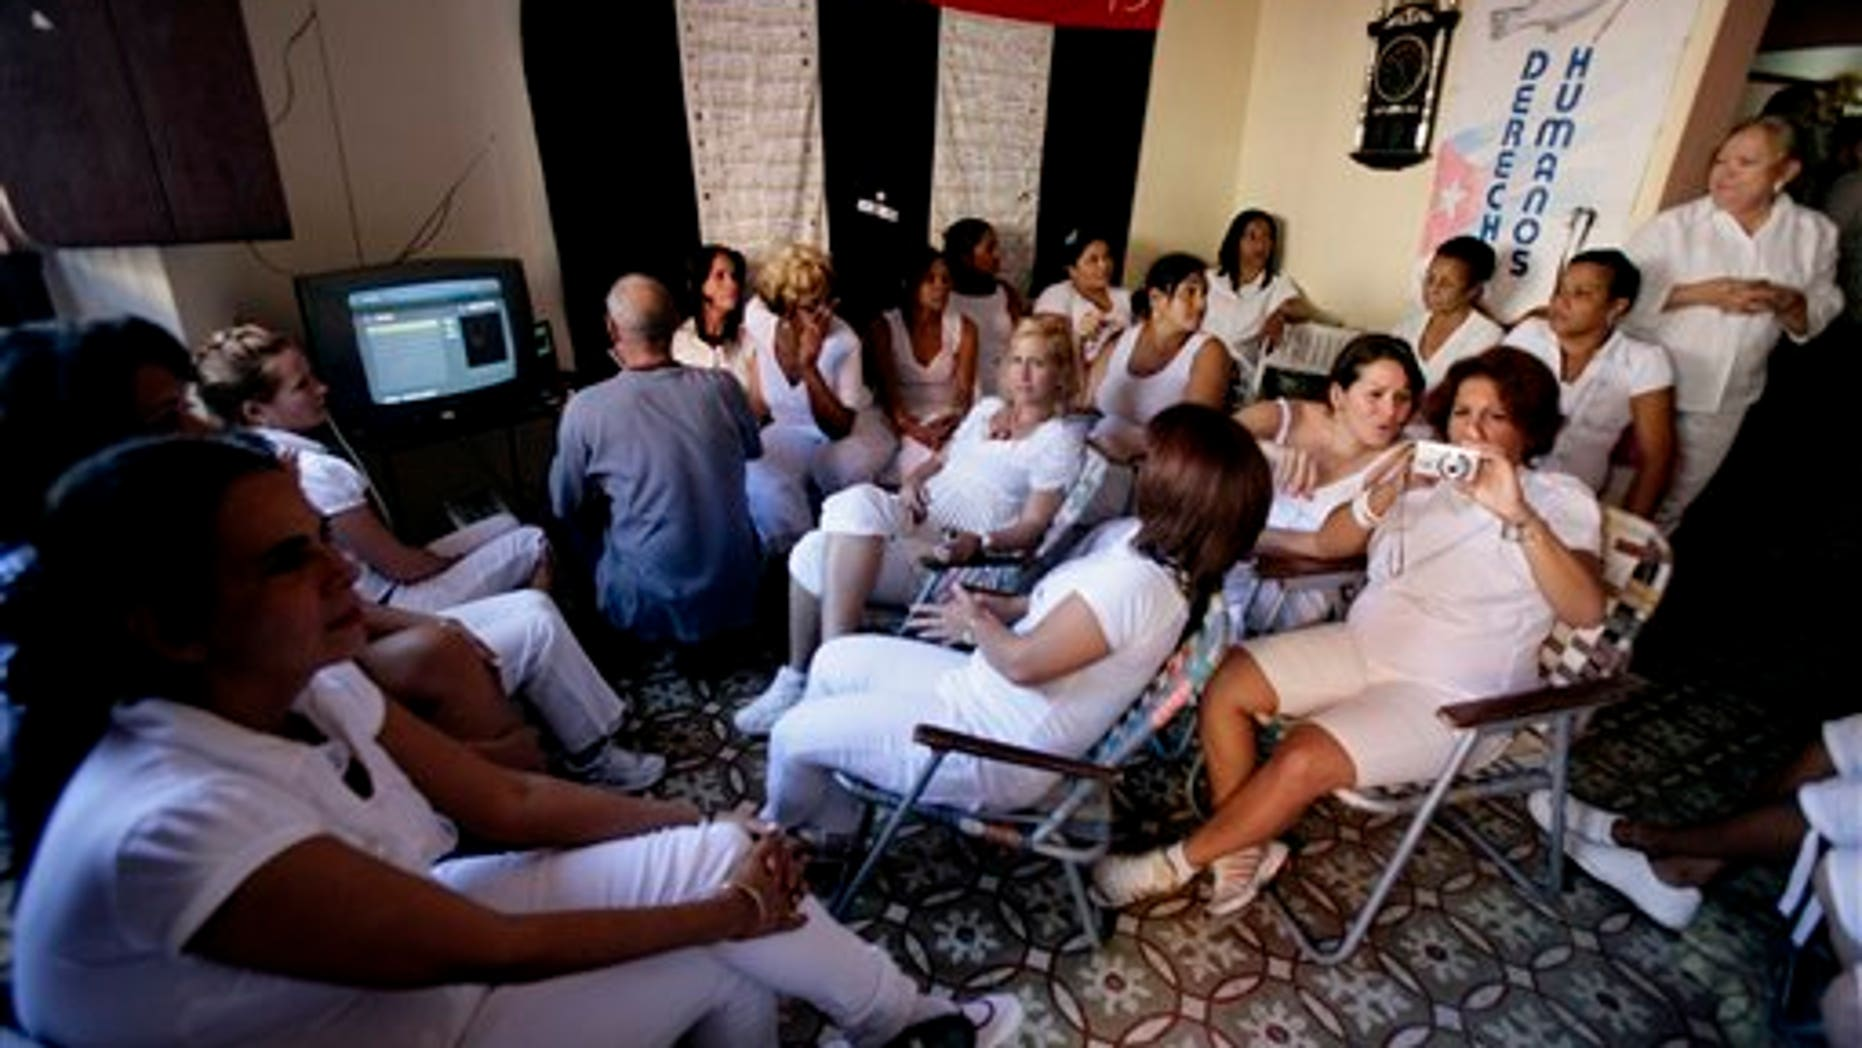 Members of Cuban dissident group Ladies in White gather in a home to commemorate the anniversary of the 2003 government crackdown on dissidents in Havana, Cuba, Friday March 18, 2011. Some 75 activists, intellectuals and social commentators were arrested in the 2003 sweep and sentenced to long jail terms. The government agreed last year to free all that remained in prison, and two of those arrested in the crackdown are still being held. (AP Photo/Javier Galeano)